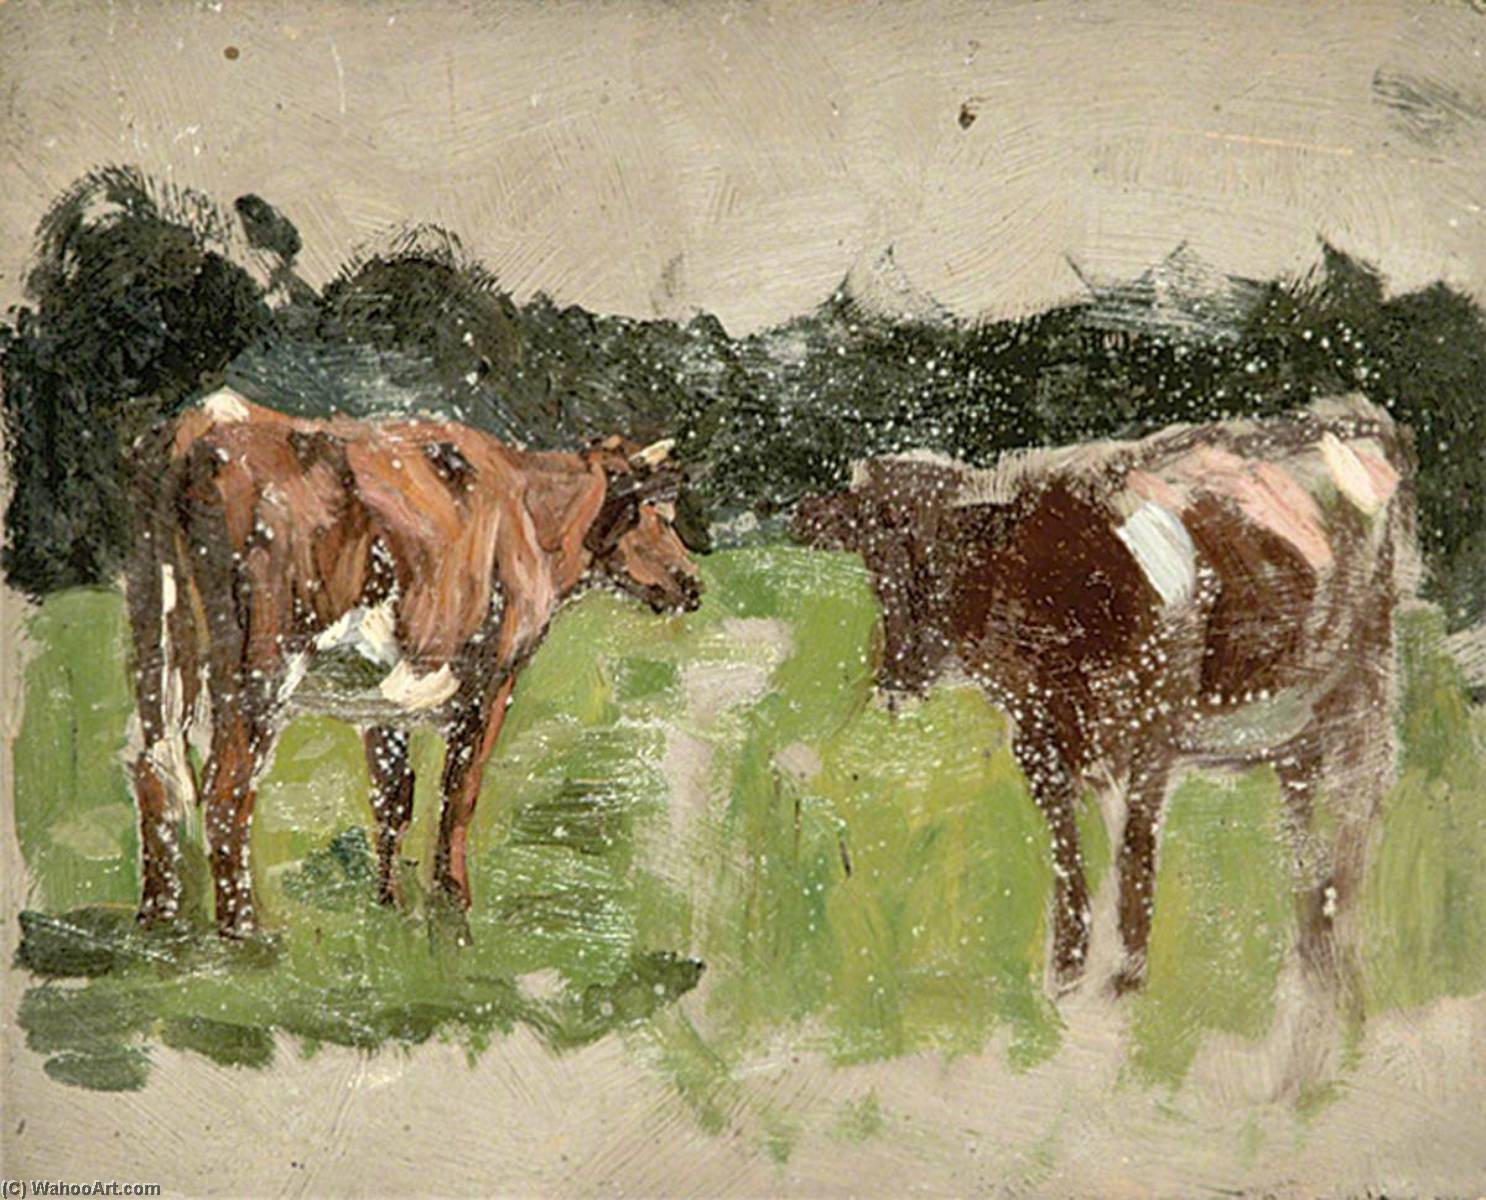 Cows in a Field by Gunning King | Famous Paintings Reproductions | WahooArt.com